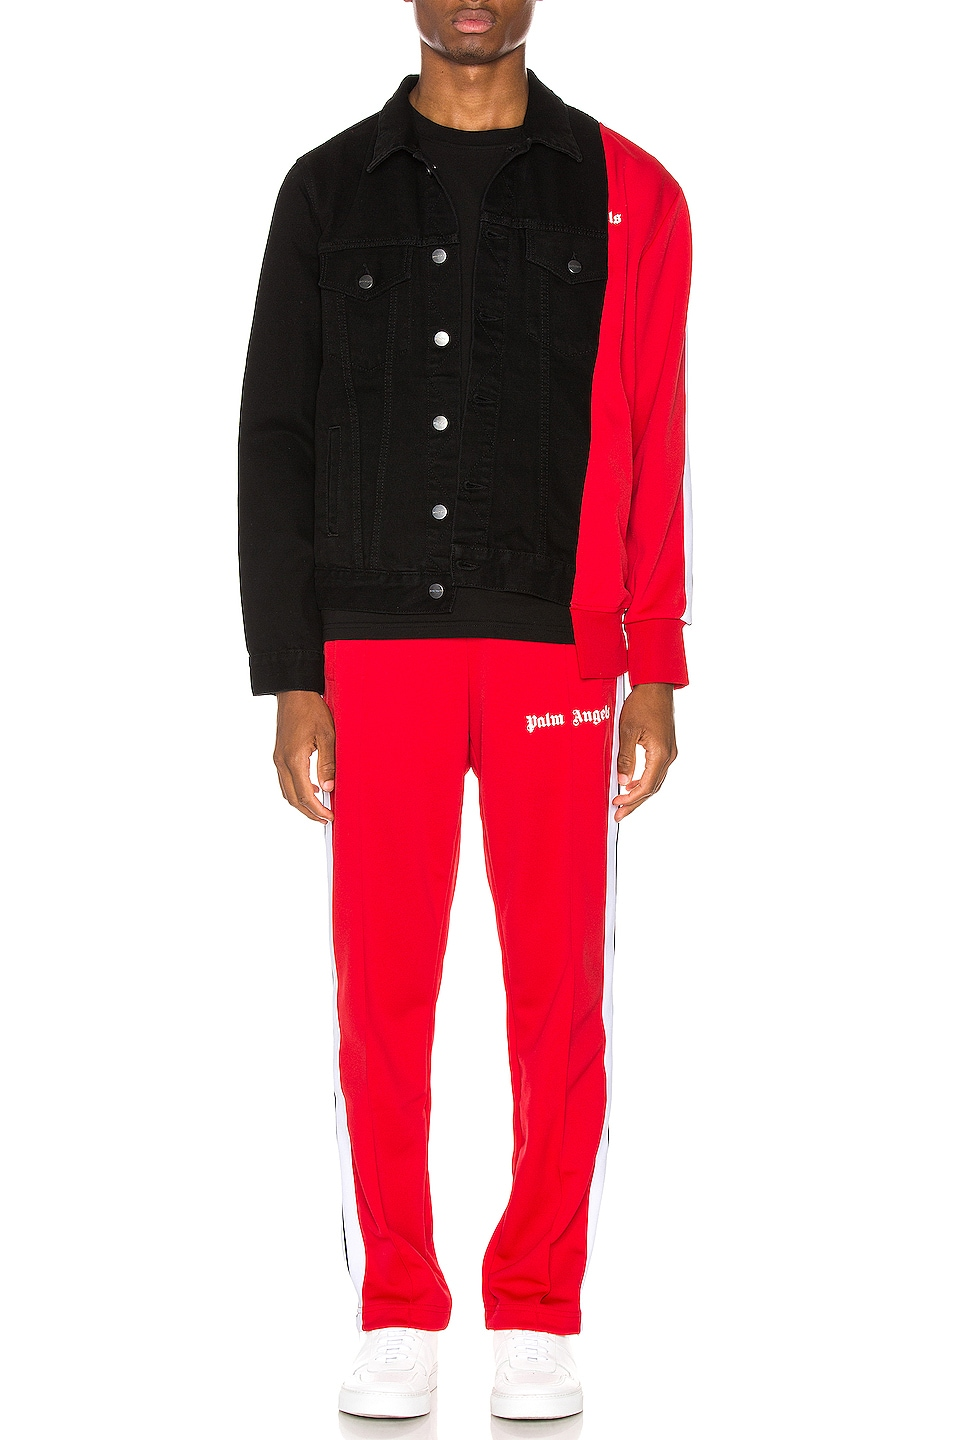 Image 6 of Palm Angels Bold Track Trucker Jacket in Black & Red